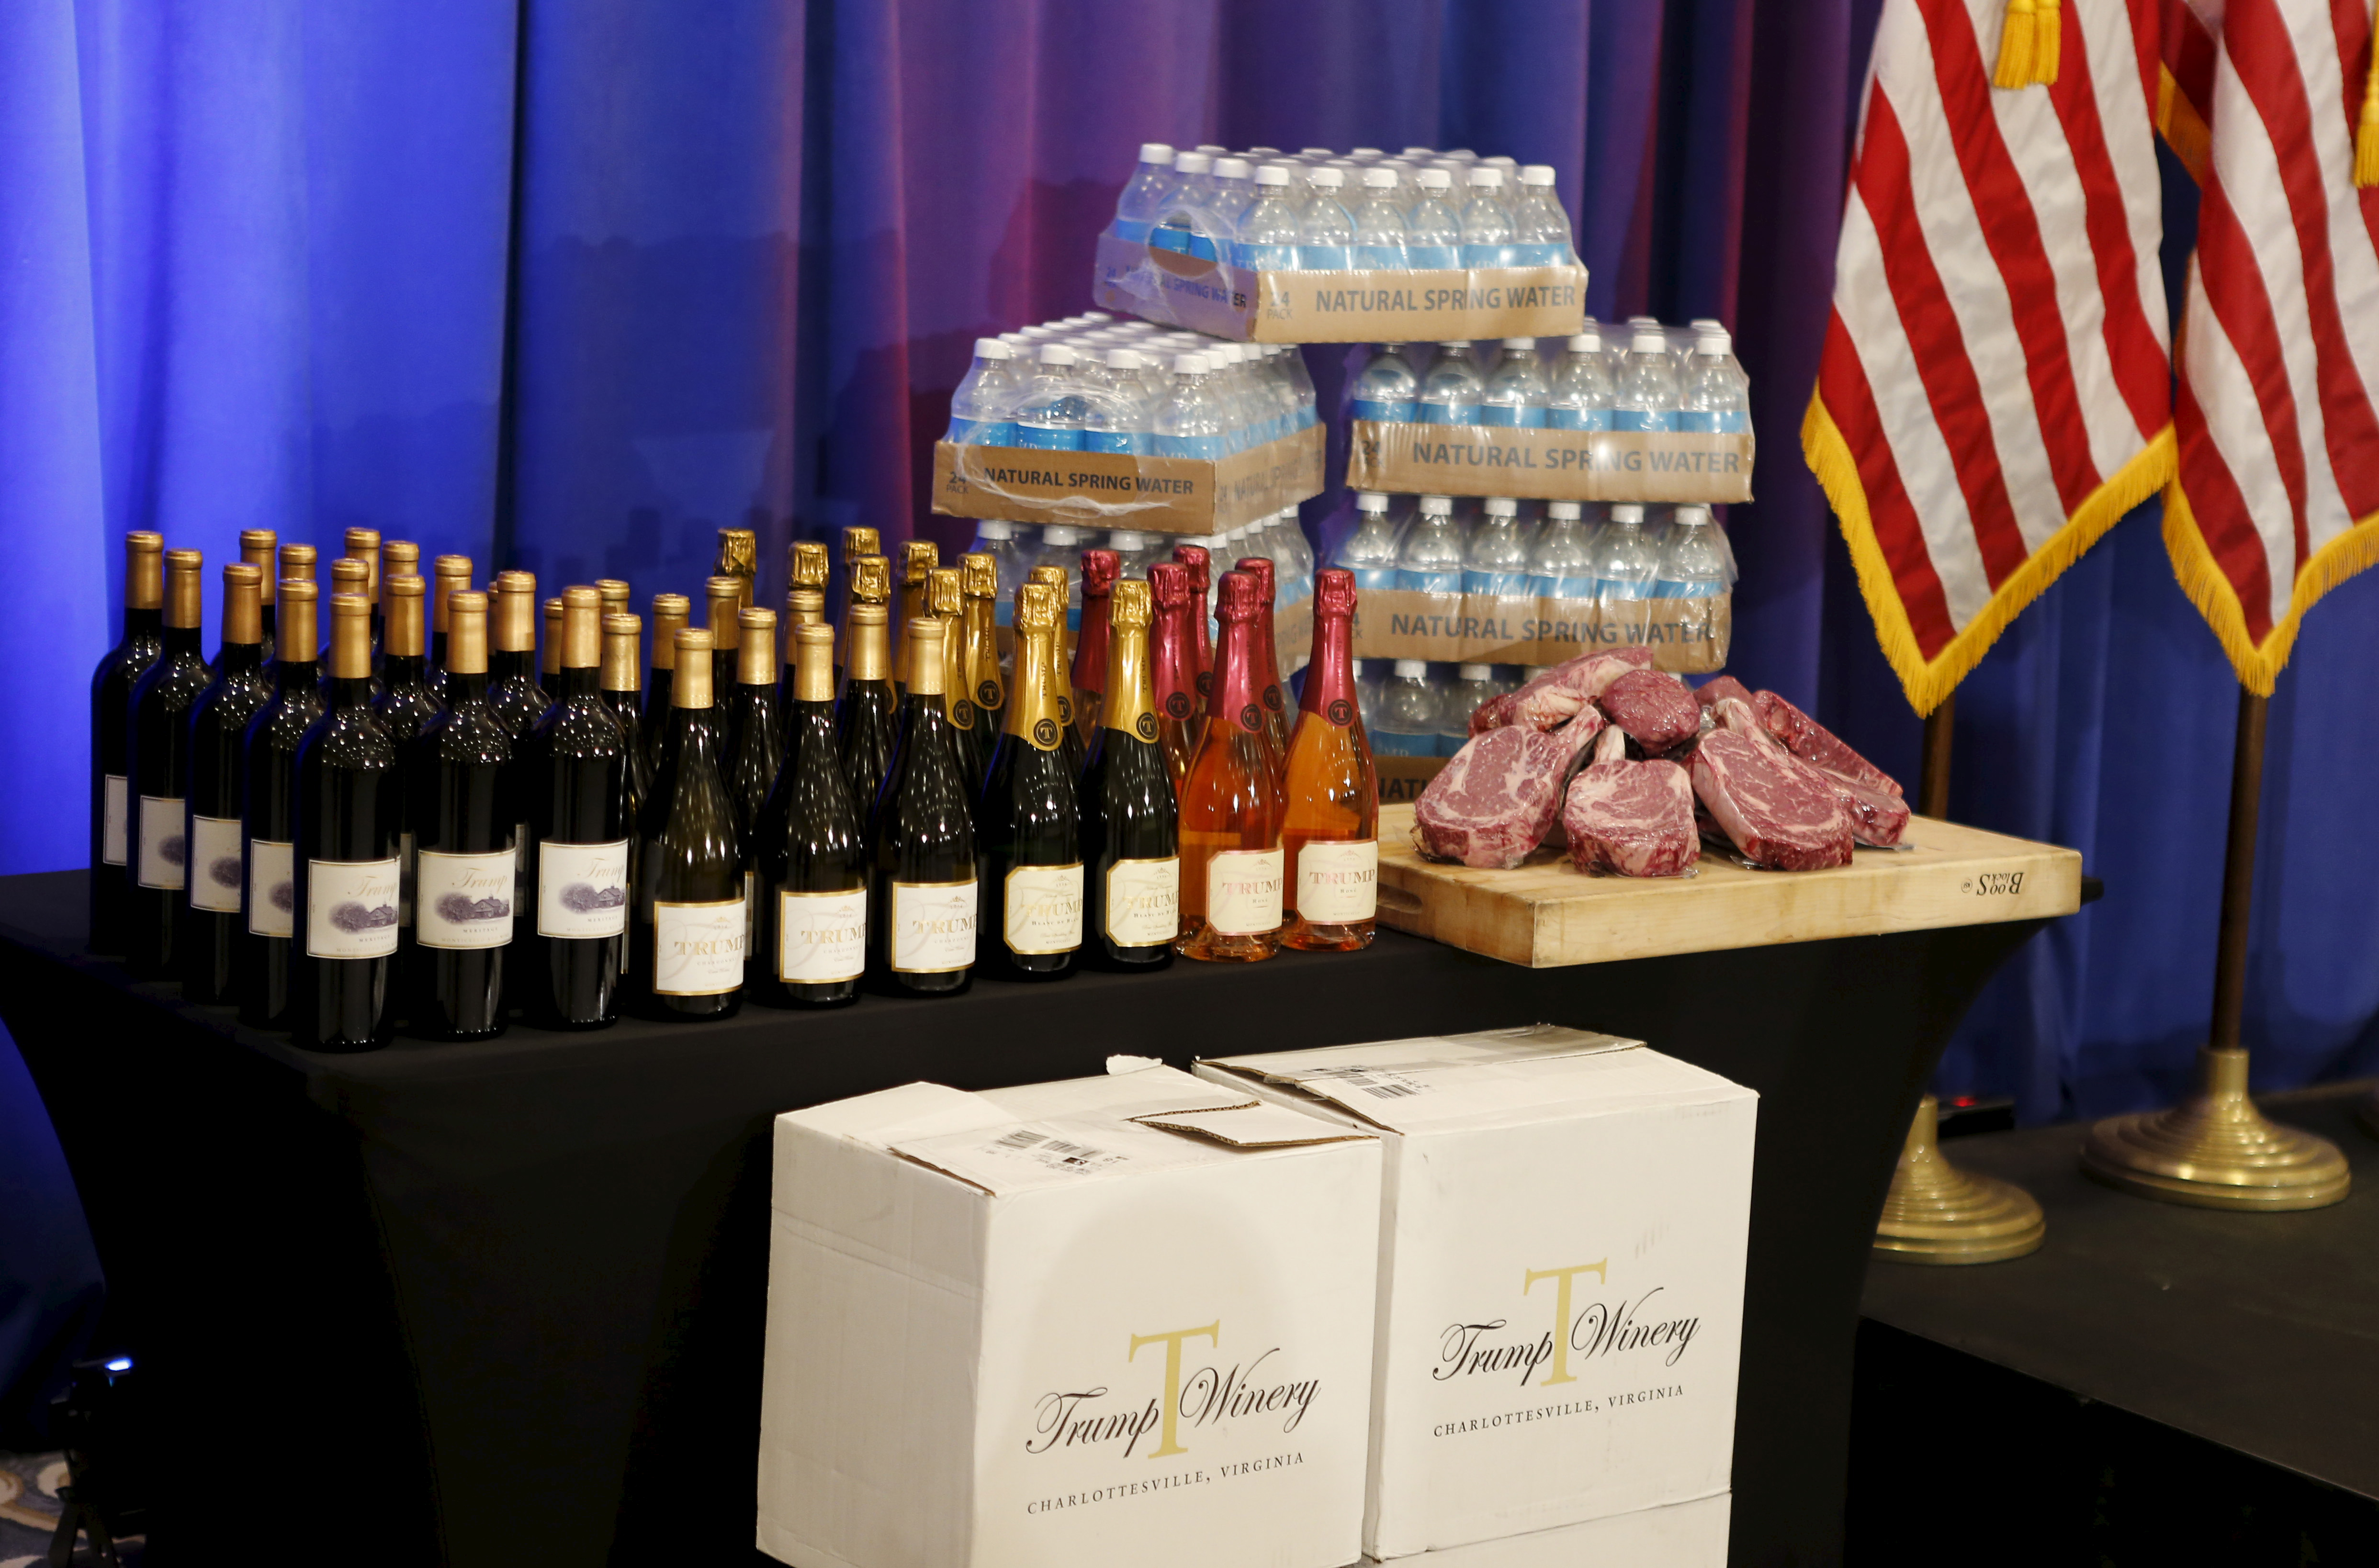 Steaks and chops described as 'Trump meat' are shown near the podium with Trump branded wines and water before Donald Trump was scheduled to appear at a press event at his Trump National Golf Club in Jupiter, Florida, on March 8, 2016.